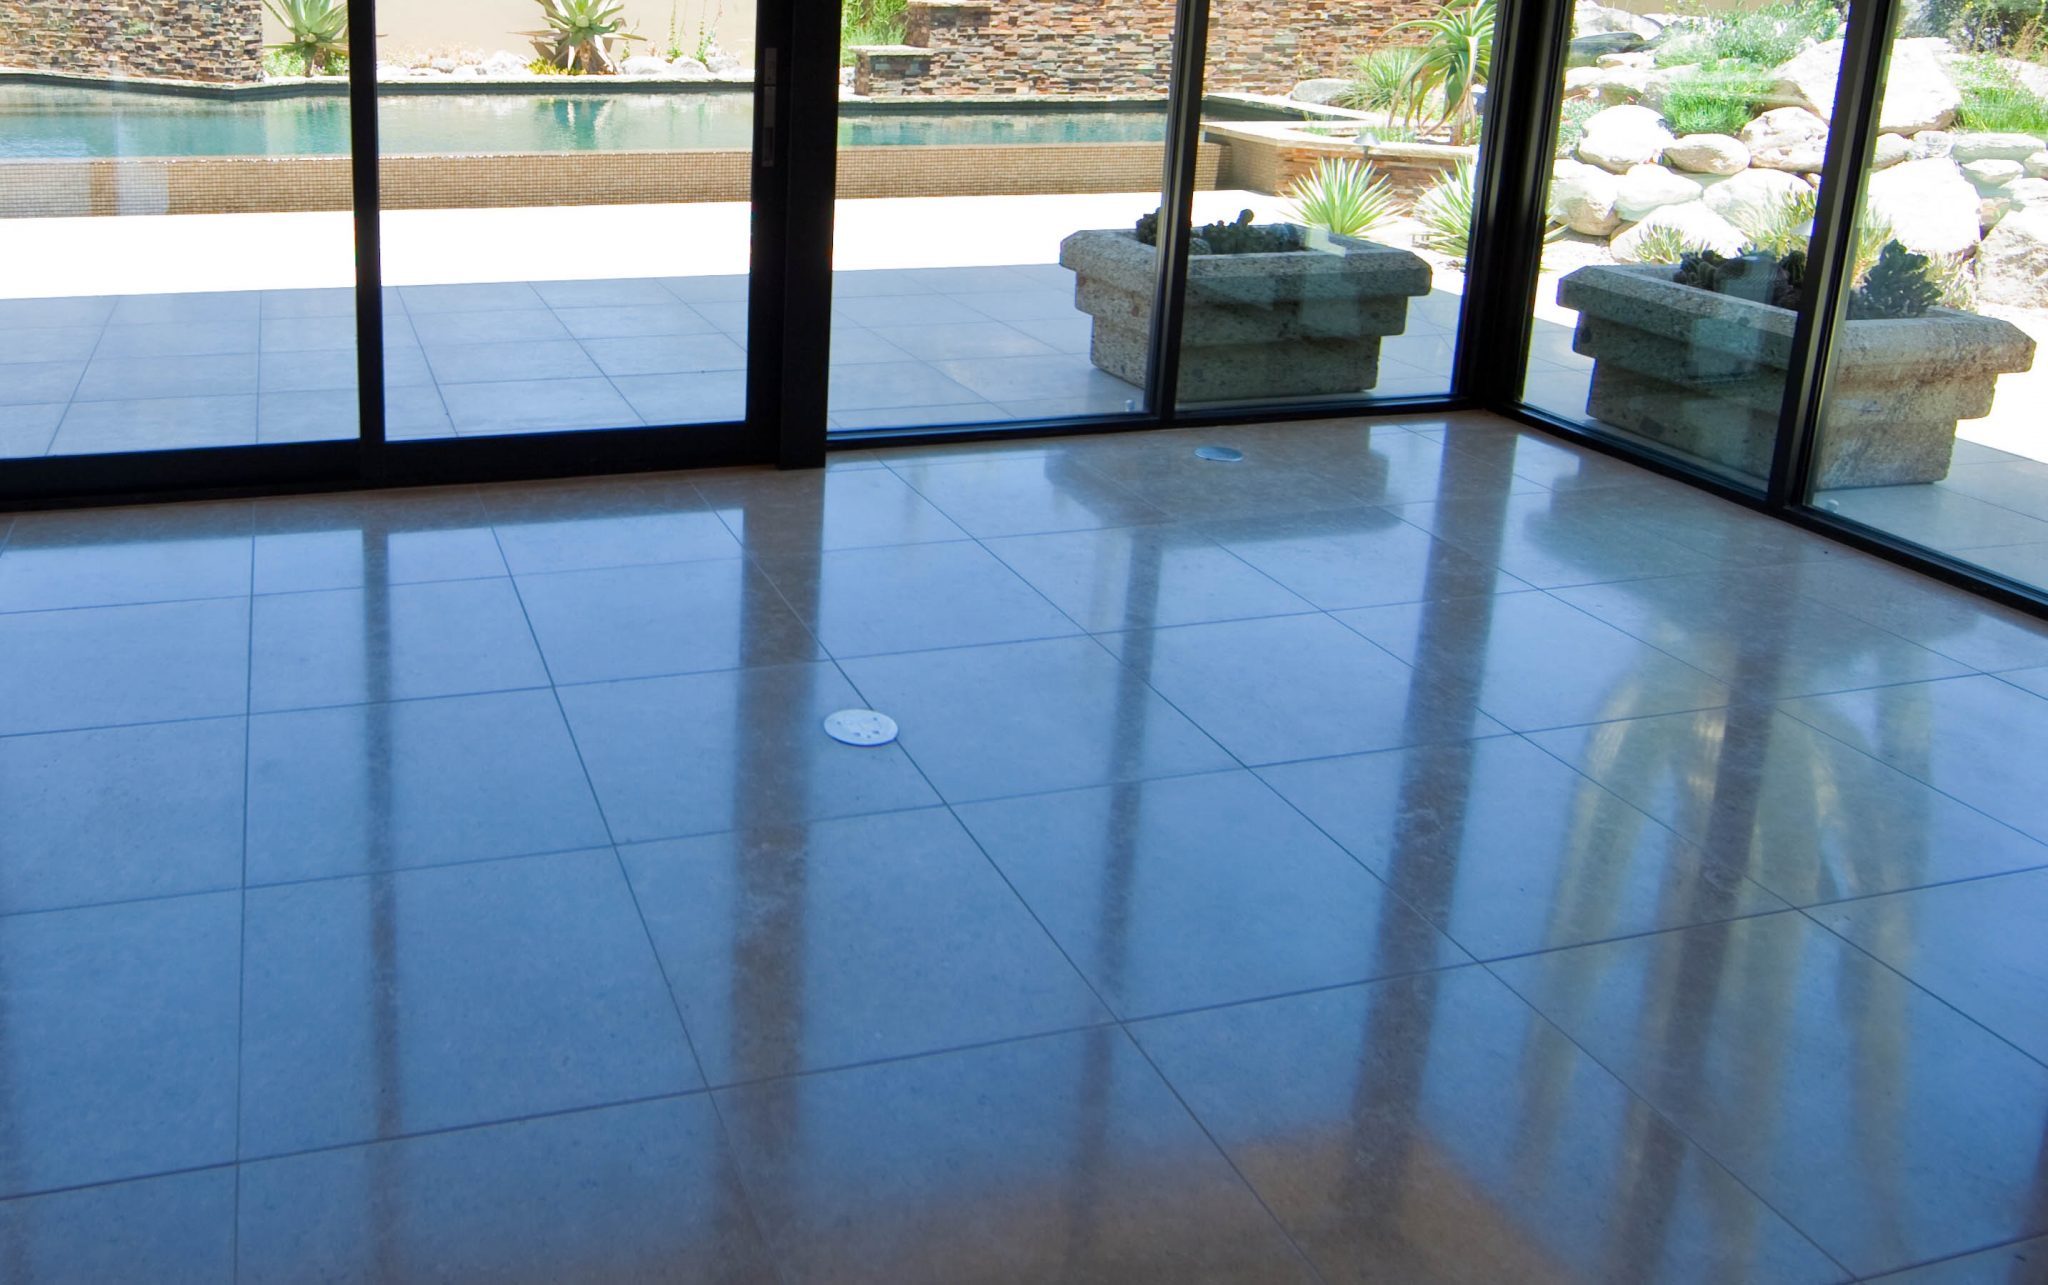 How to maintain your tile floors az tile grout care inc travertine after stone diamond polishing az tile and grout tucson dailygadgetfo Images